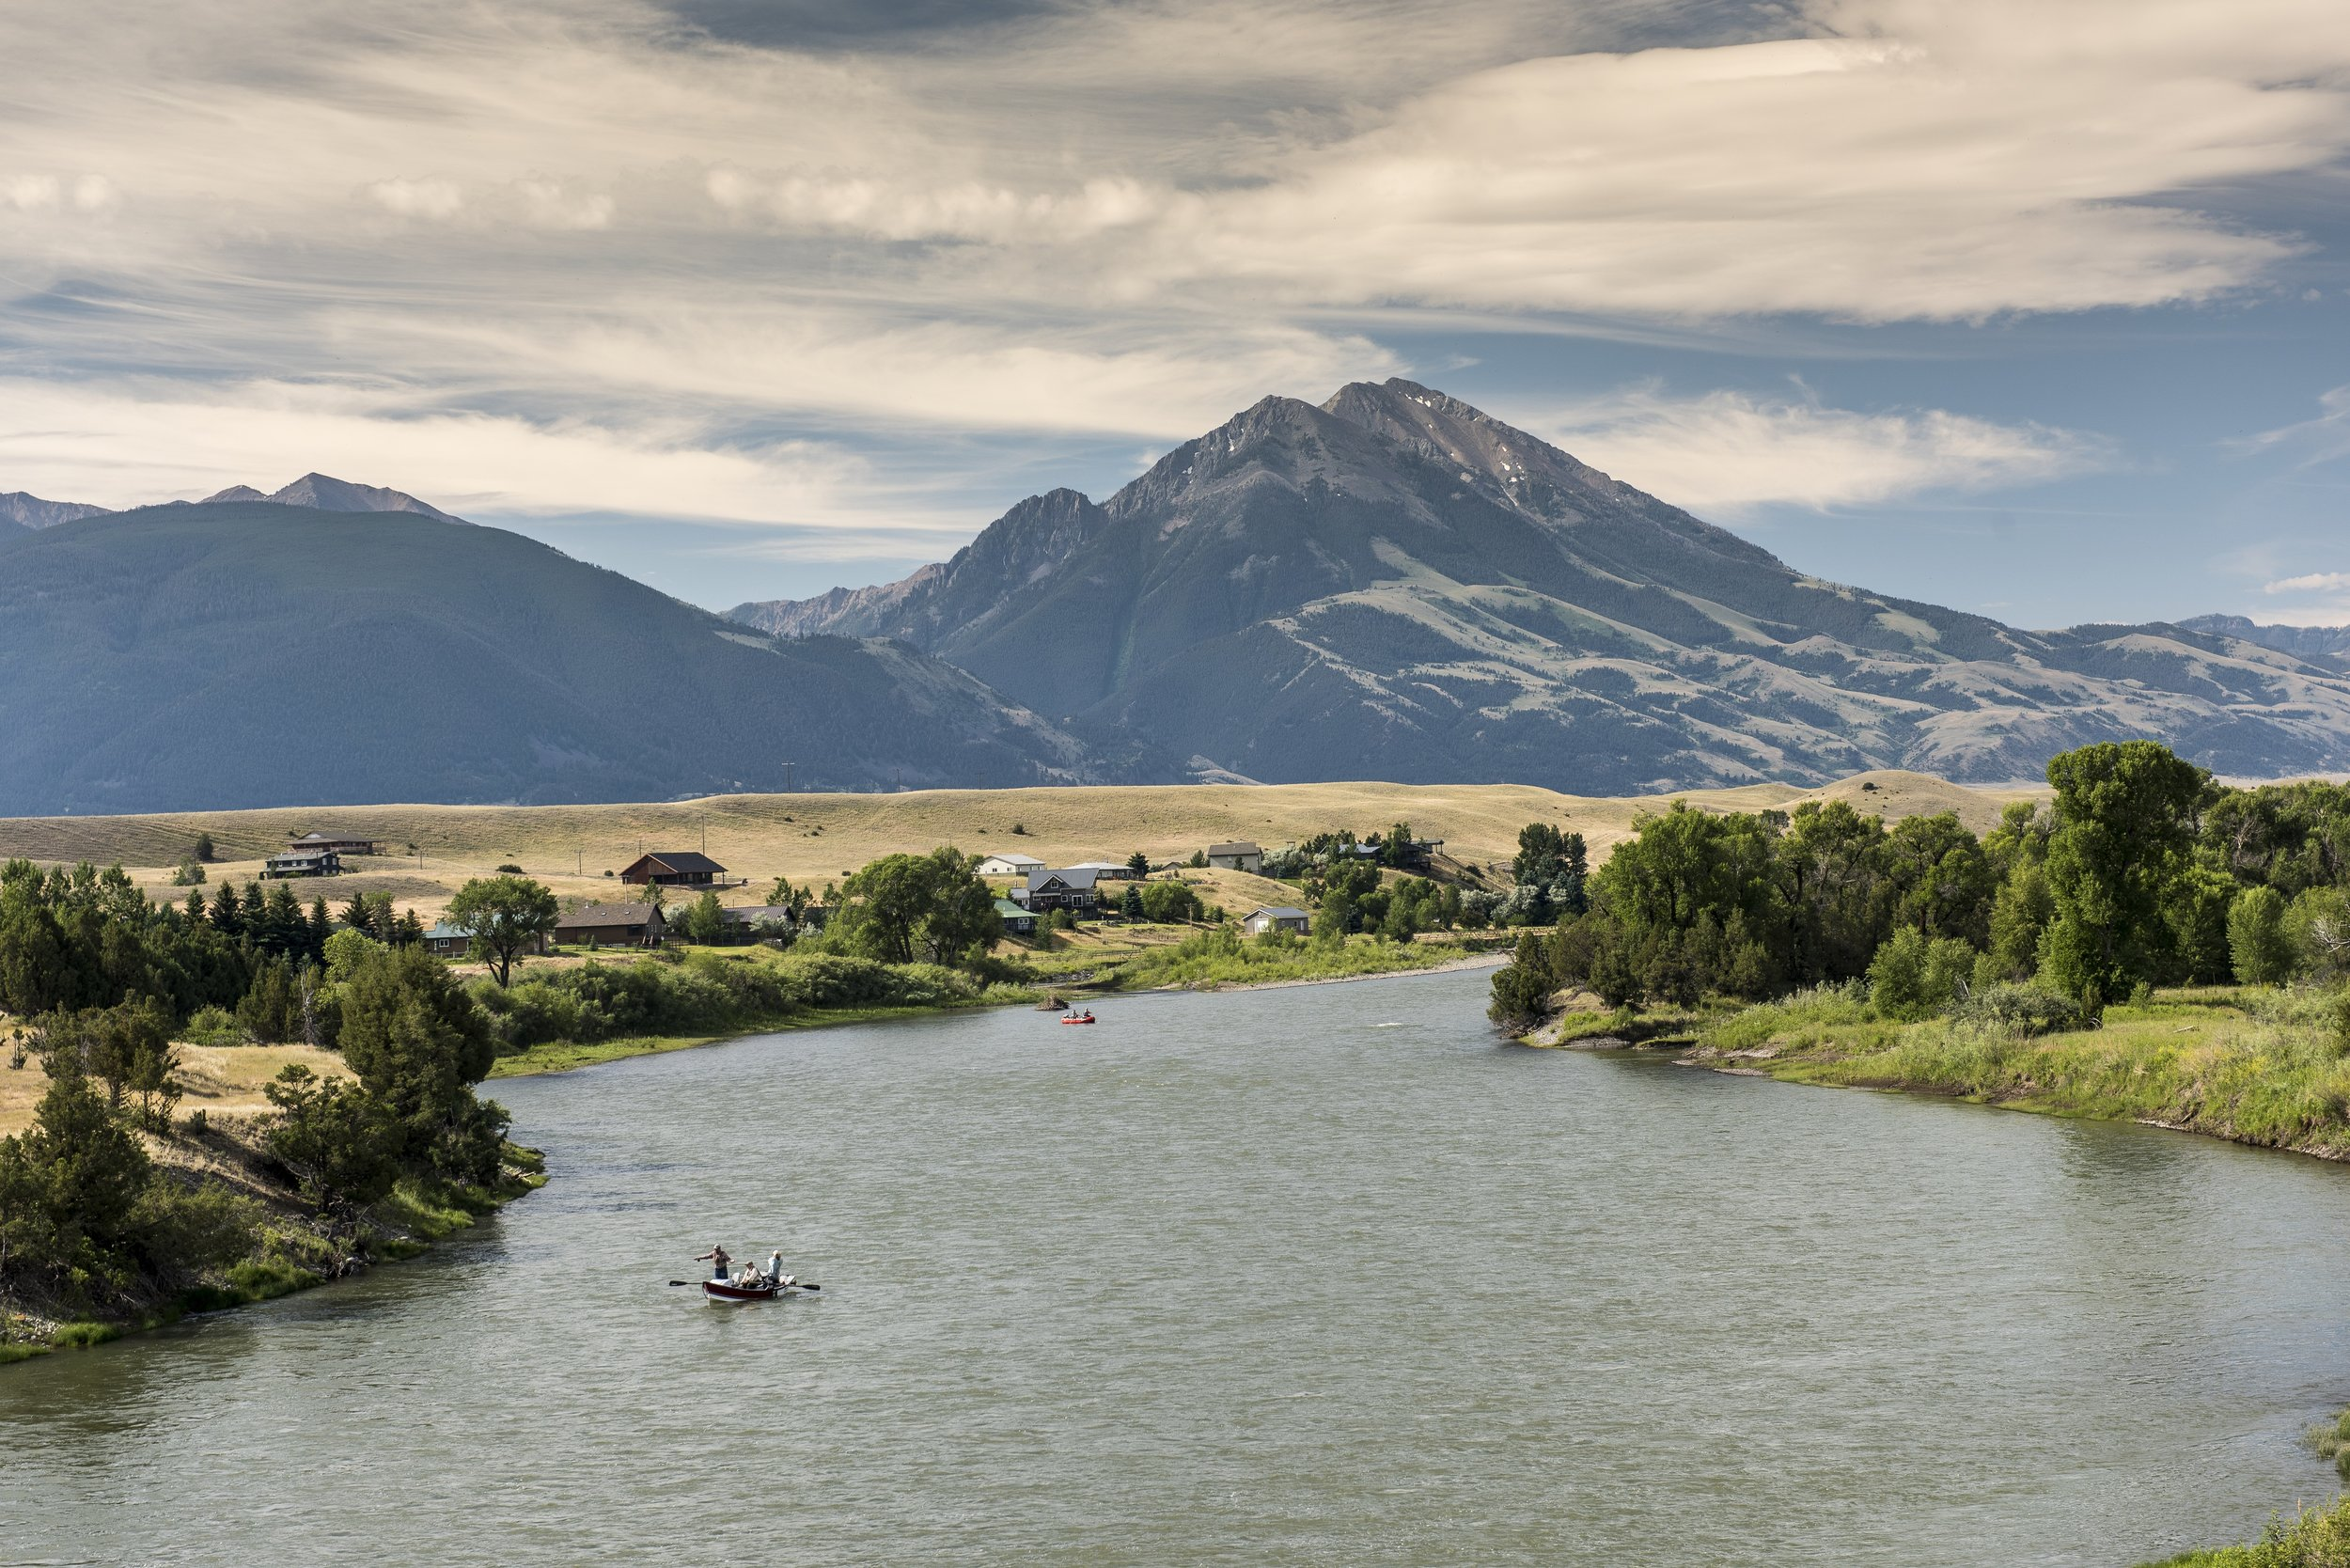 Anglers on the Yellowstone River. Sen. Tester's bill to keep risky mines out of the Emigrant mining district (in the mountains in the background) is getting a hearing in a Senate subcommittee Wednesday. (Photo Bill Campbell.)